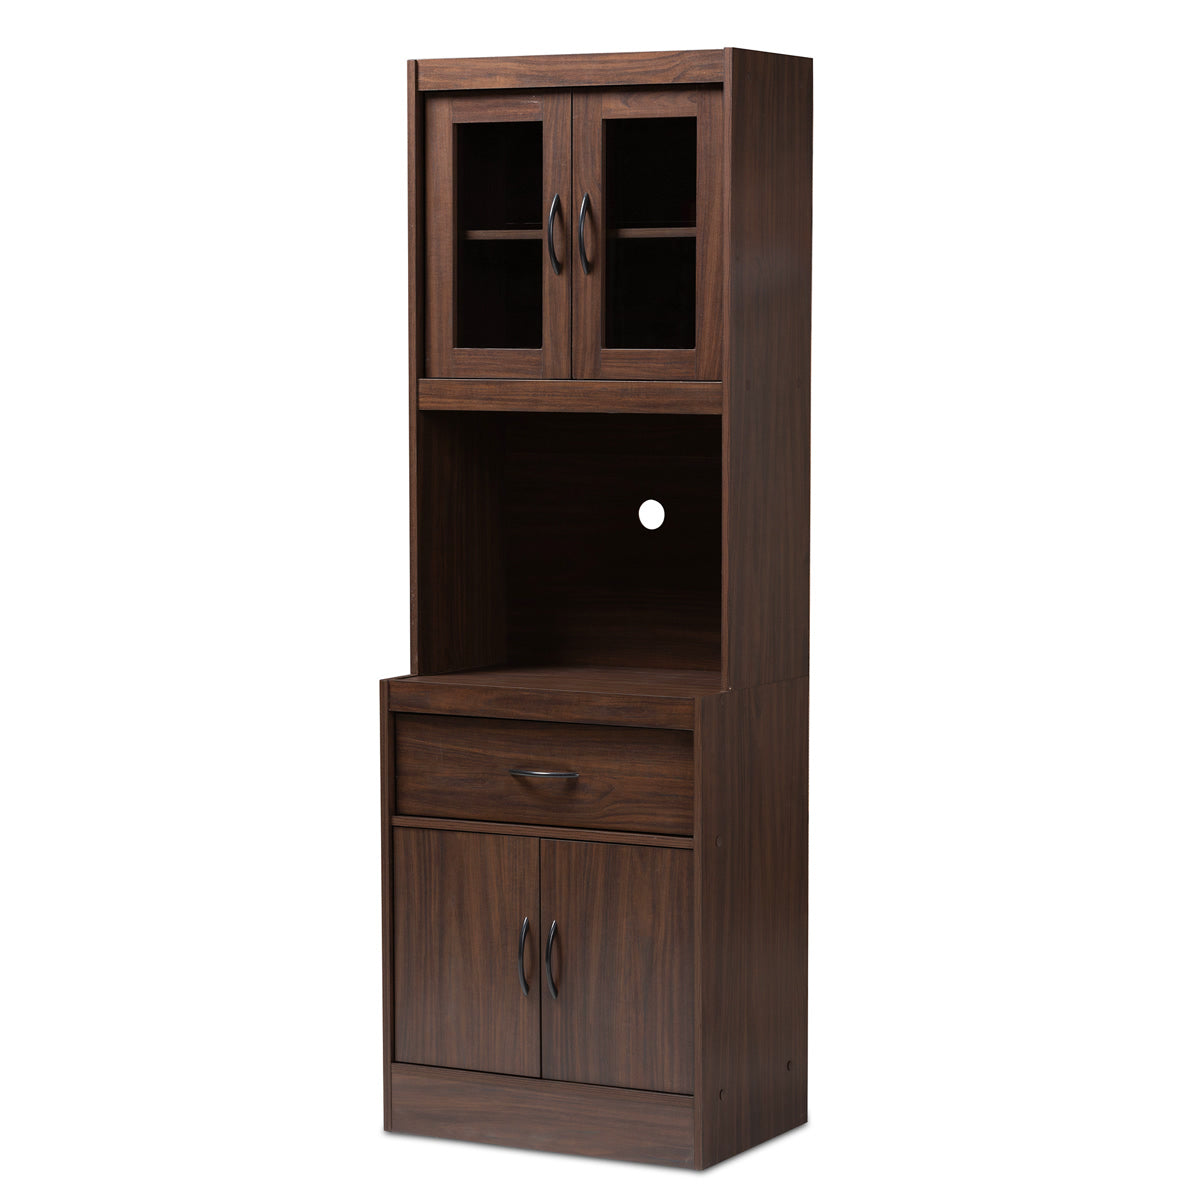 Baxton Studio Laurana Modern and Contemporary Dark Walnut Finished Kitchen Cabinet and Hutch Baxton Studio-0-Minimal And Modern - 1